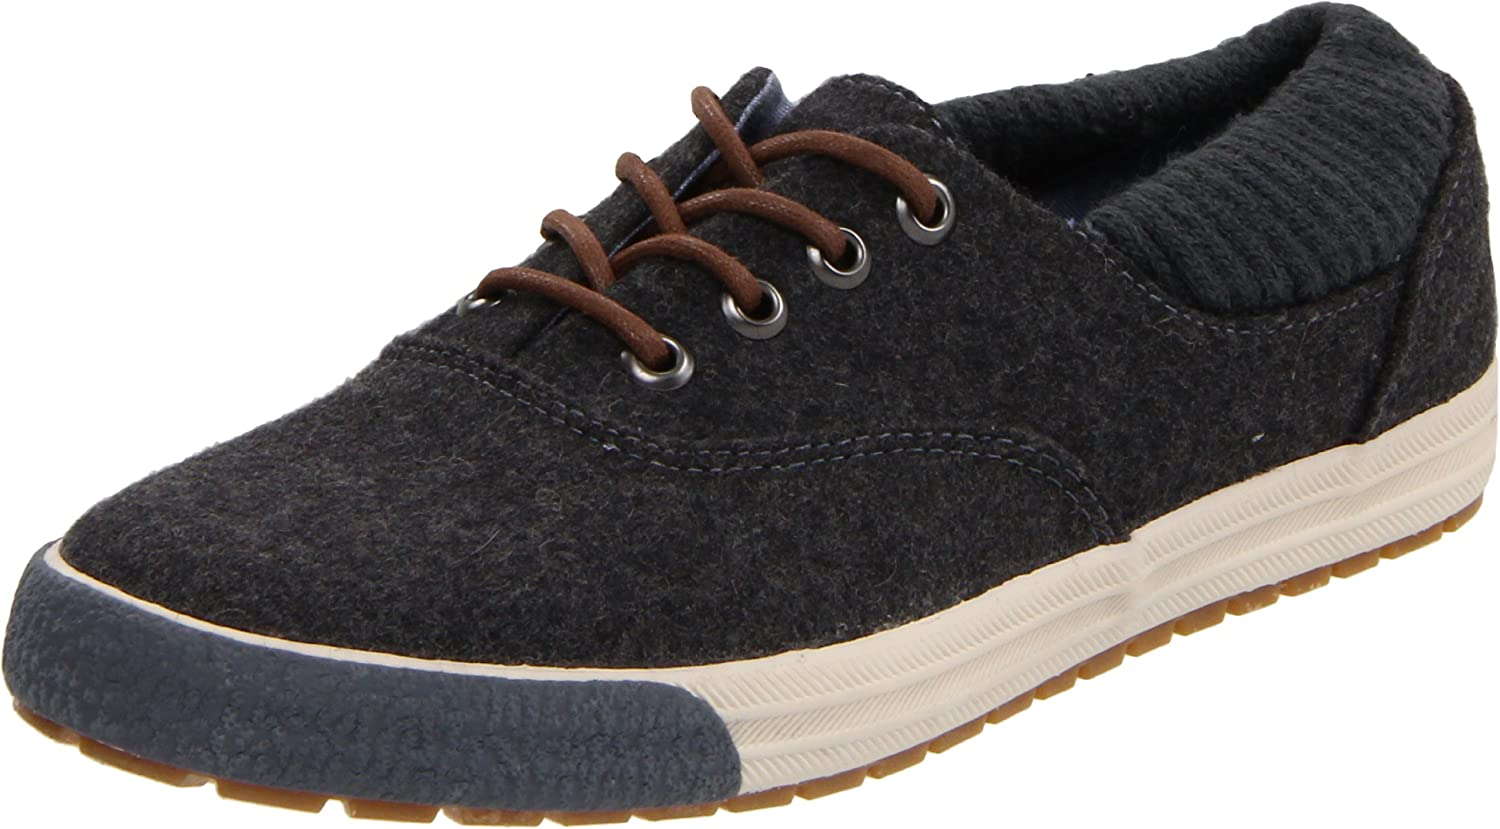 Keds Mid Varsity Mid Charcoal 19630 Charcoal Gris 58bede9 - shopssong.space